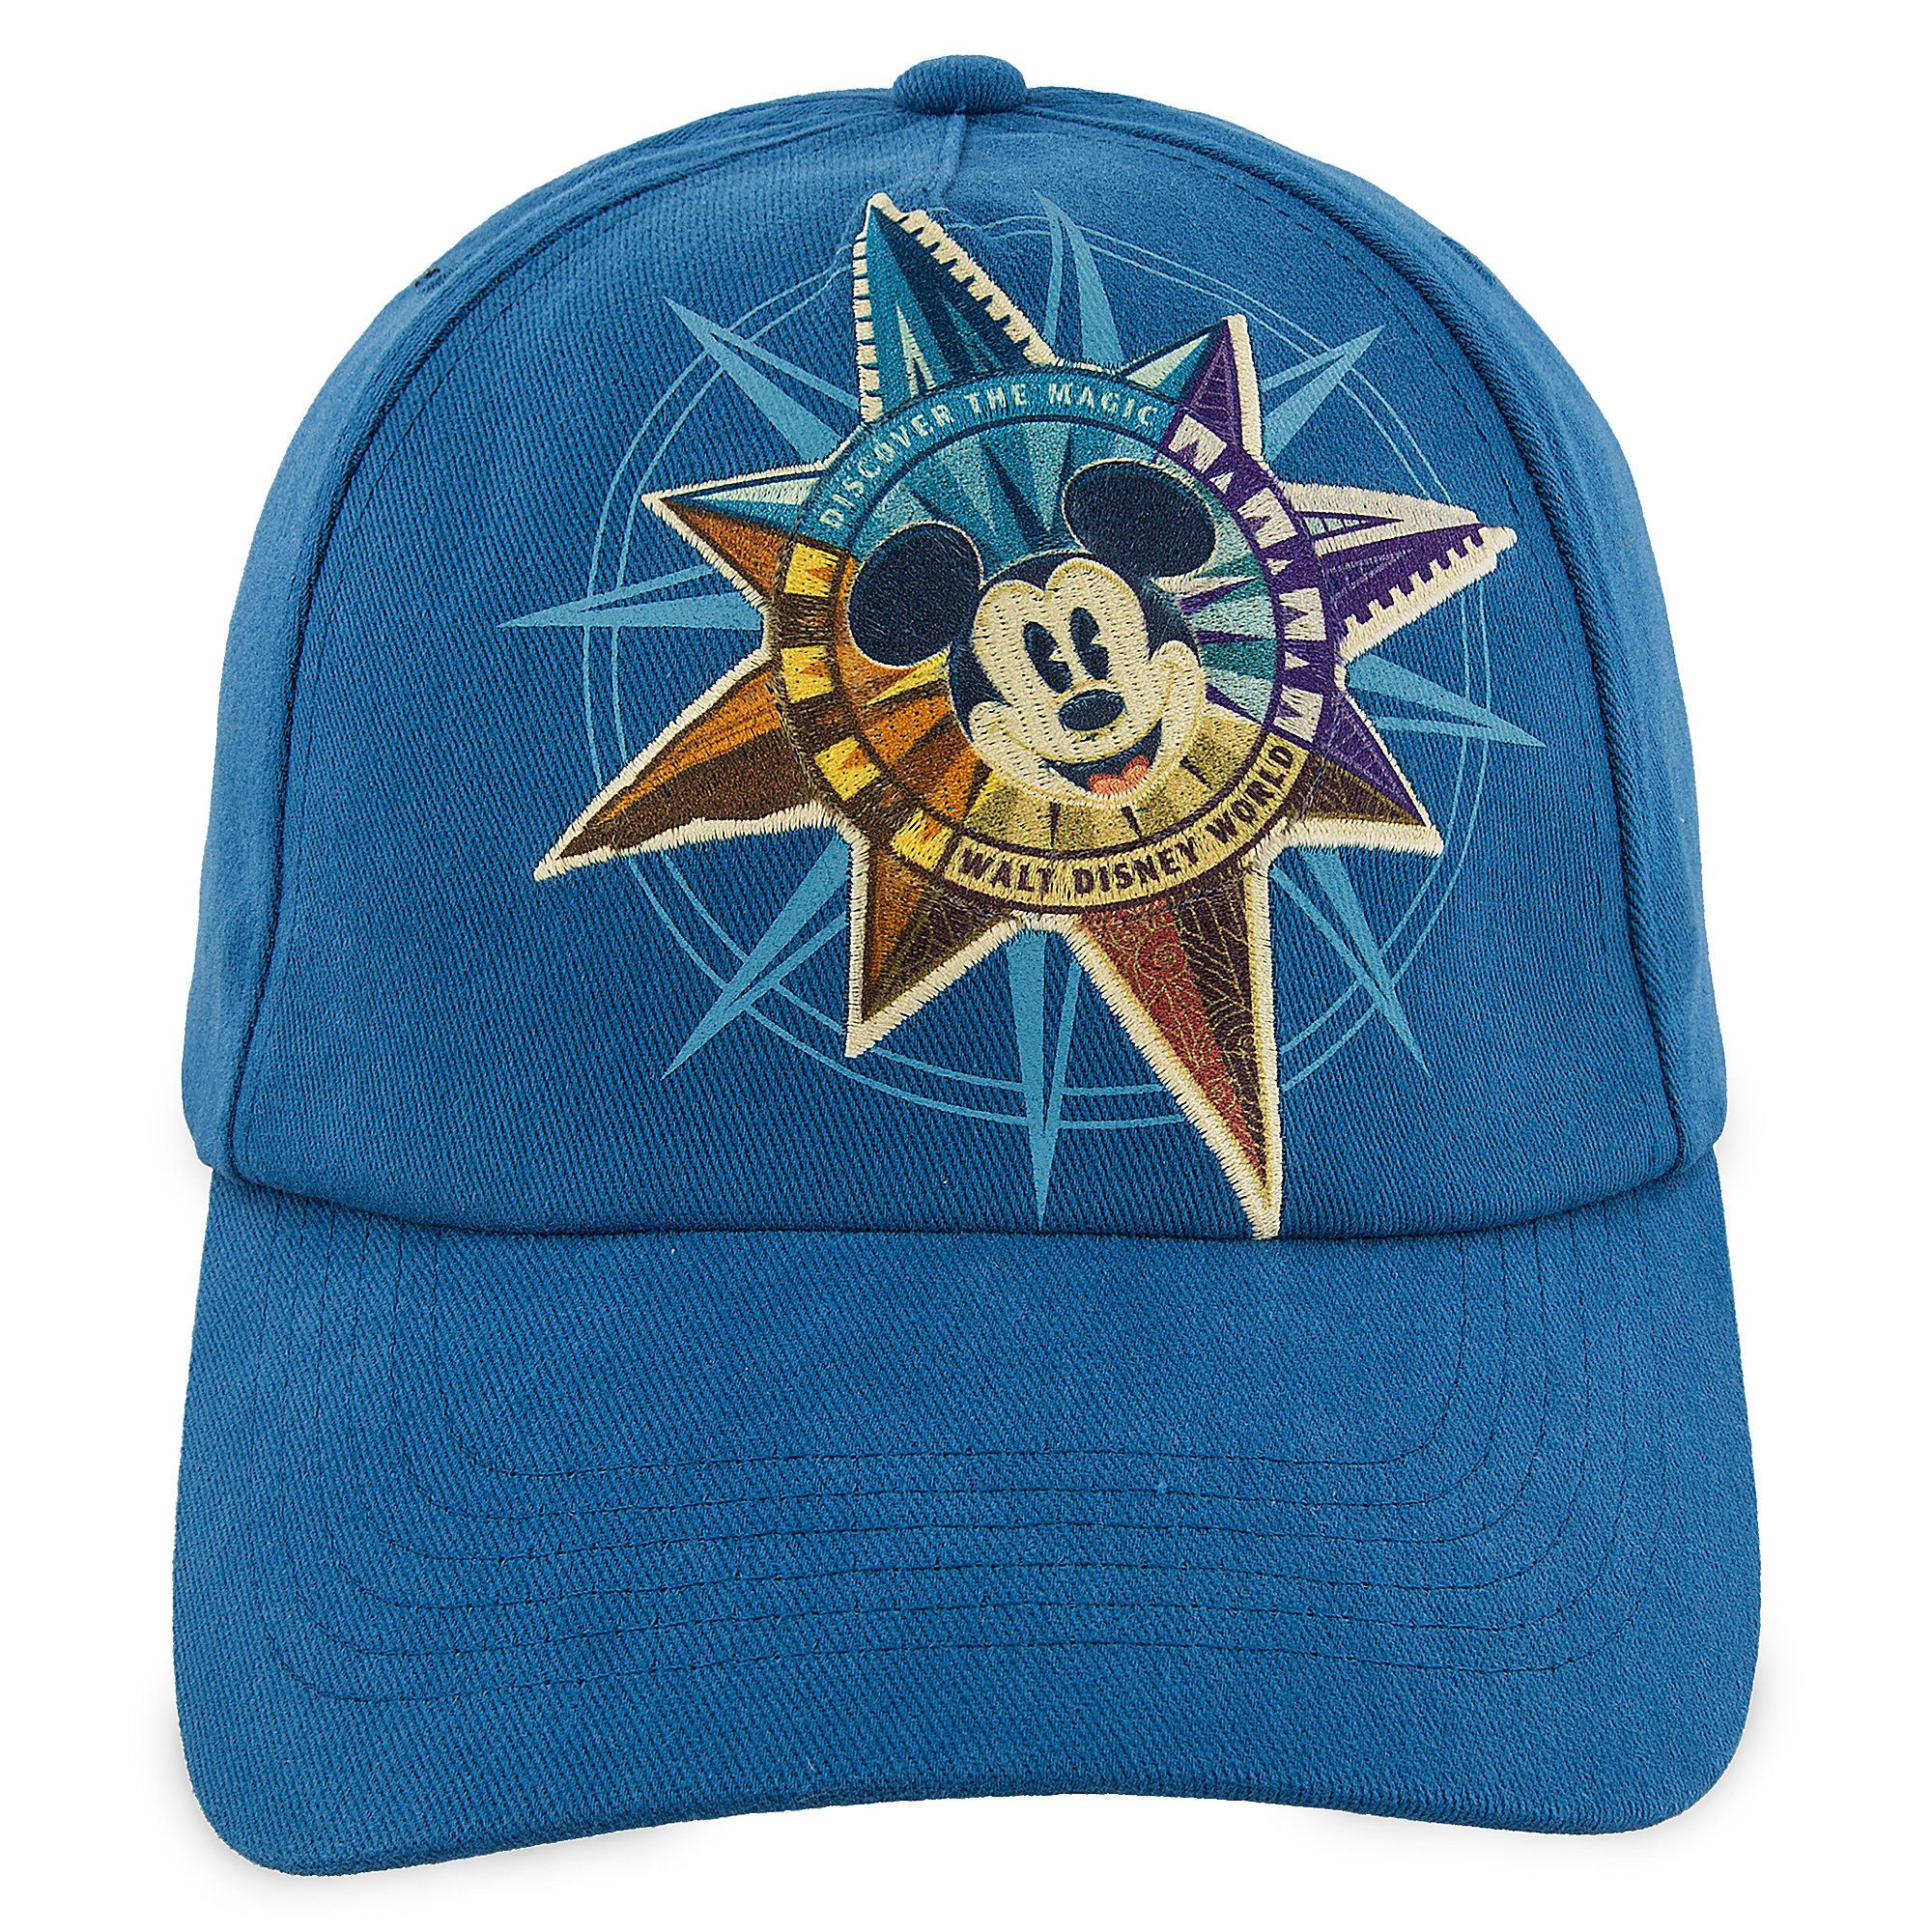 Mickey Mouse Compass Baseball Cap for Adults - Walt Disney World ... 0361859bf97